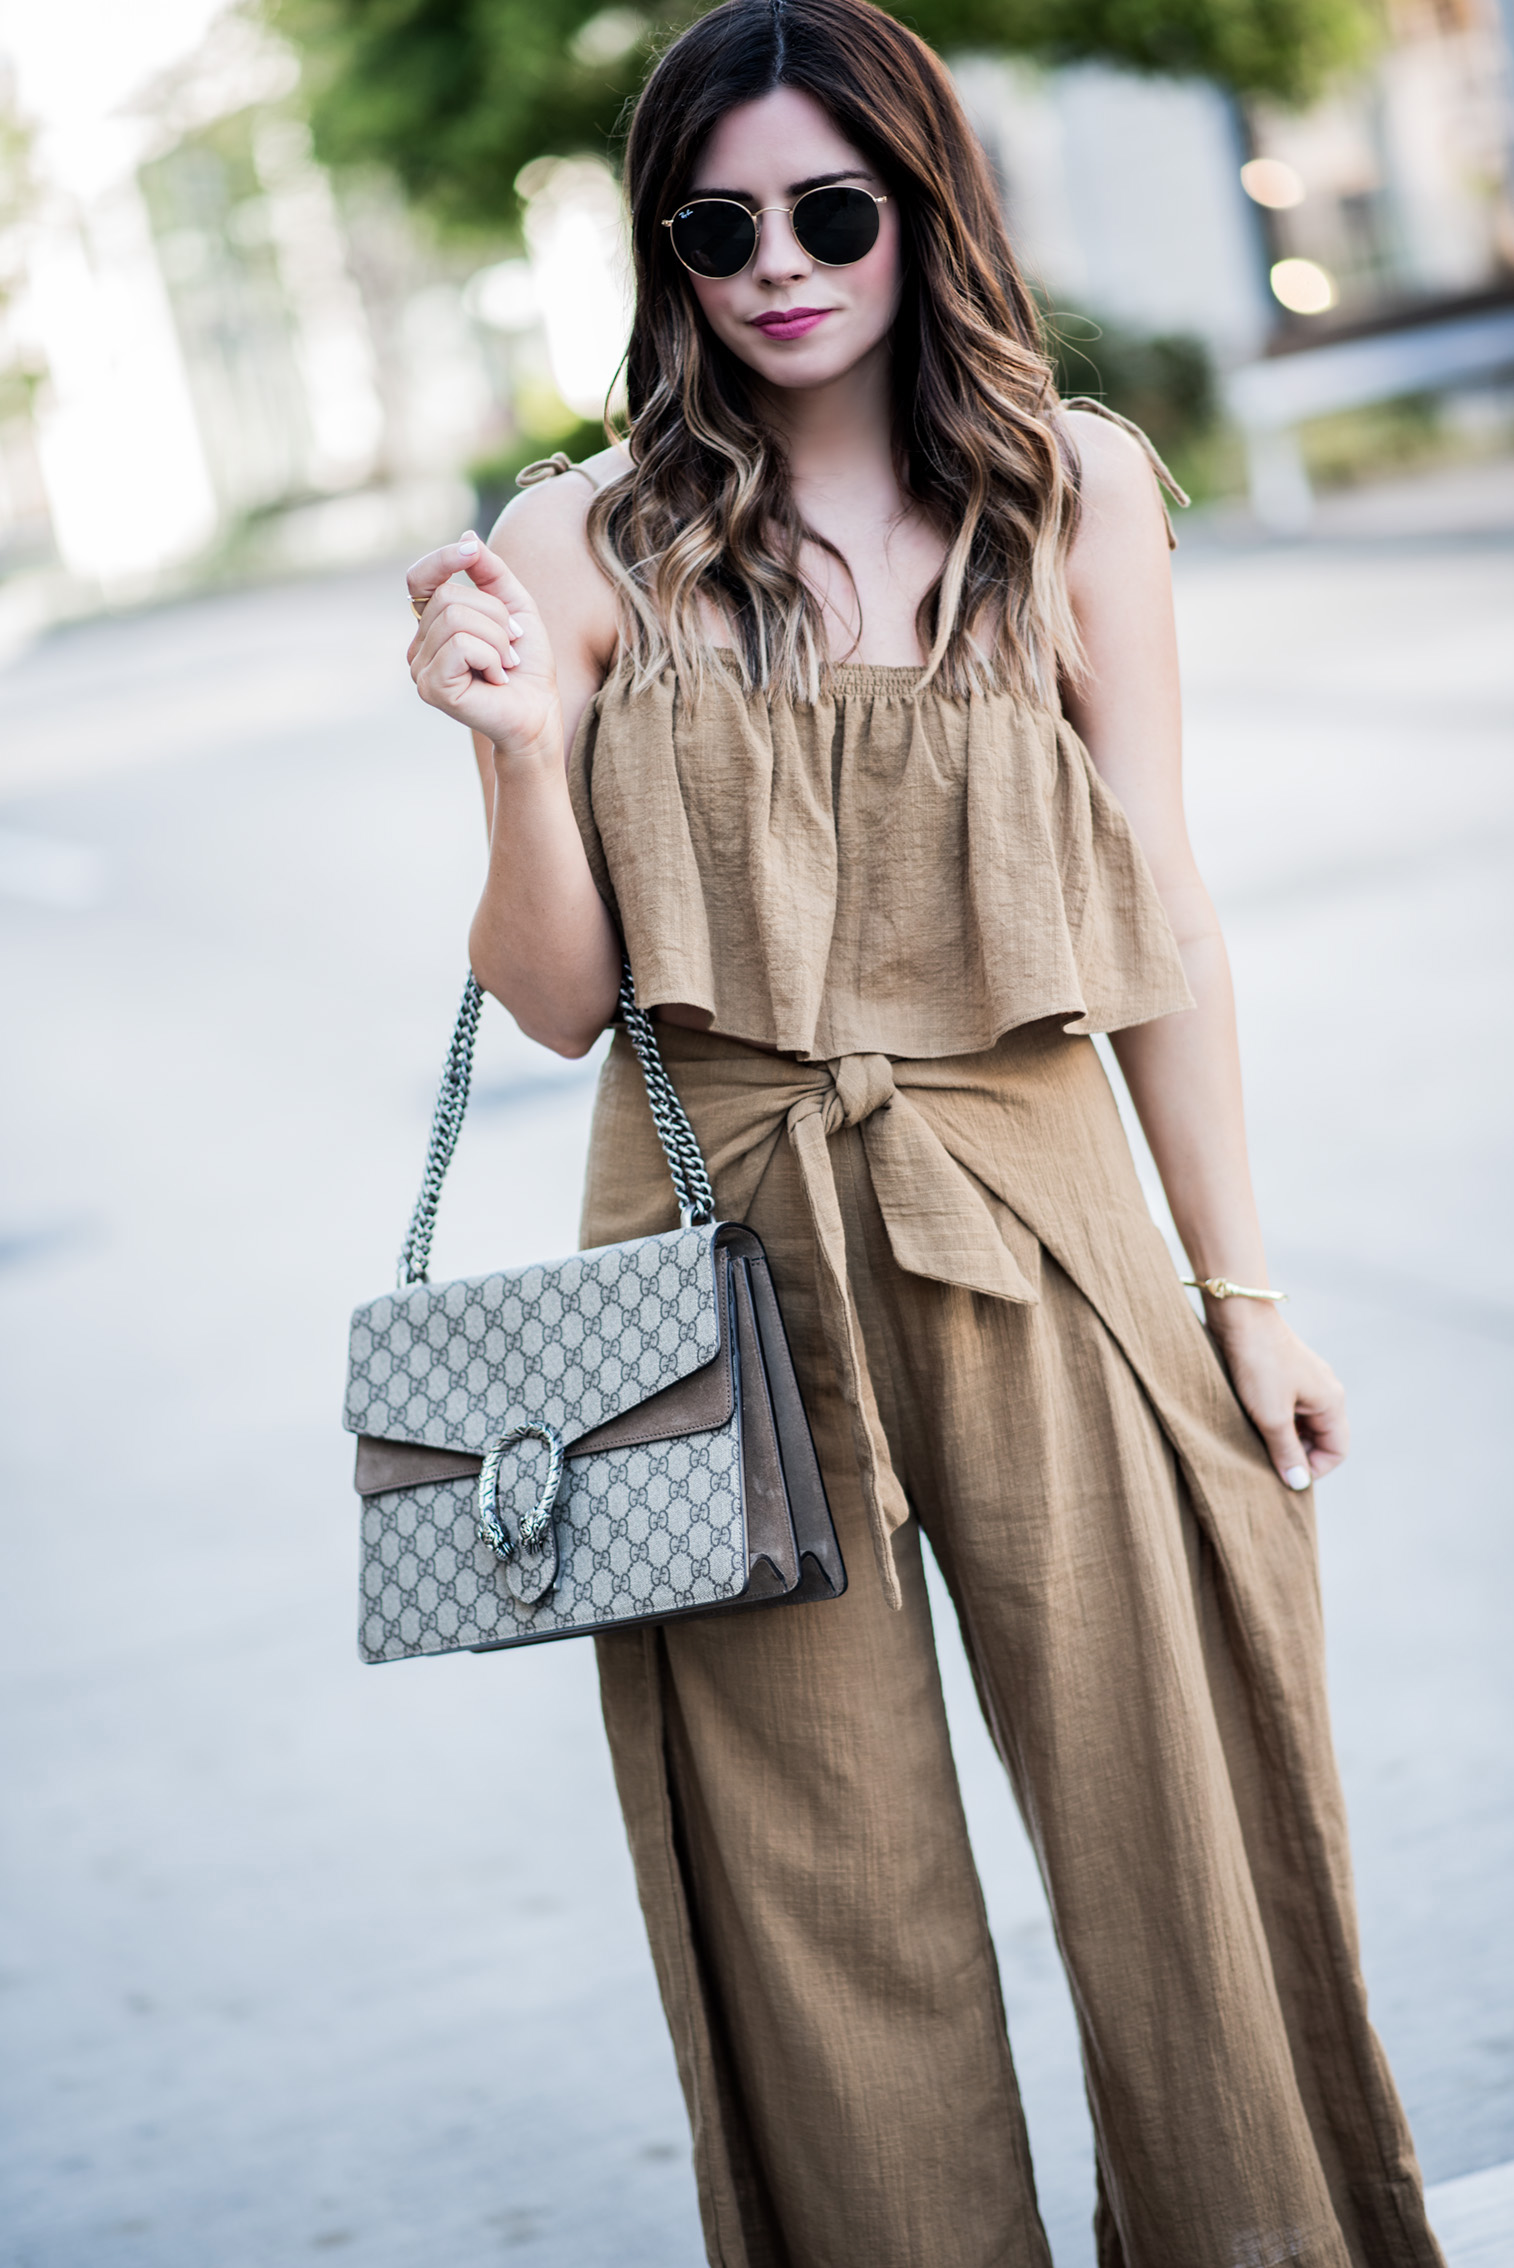 Tiffany Jais Houston fashion and lifestyle blogger | Gucci Dionysus bag, street style fashion, stewy heels, round 50mm ray bans, tropic babe set by Free People